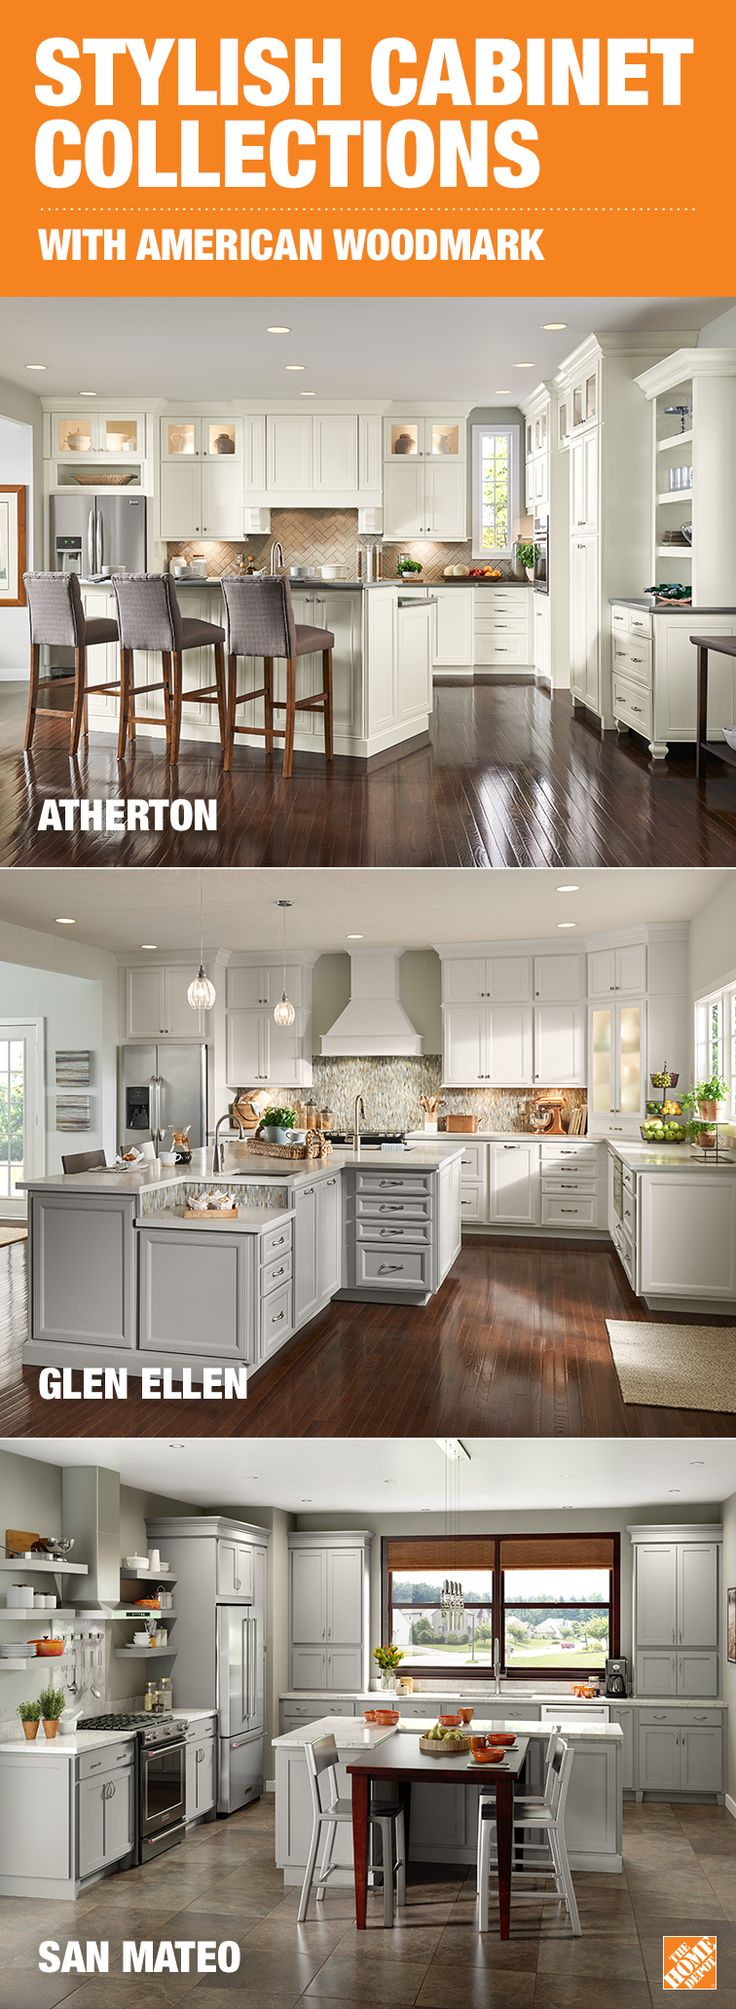 Kitchen Cabinets San Mateo 17 Best Ideas About American Woodmark Cabinets On Pinterest